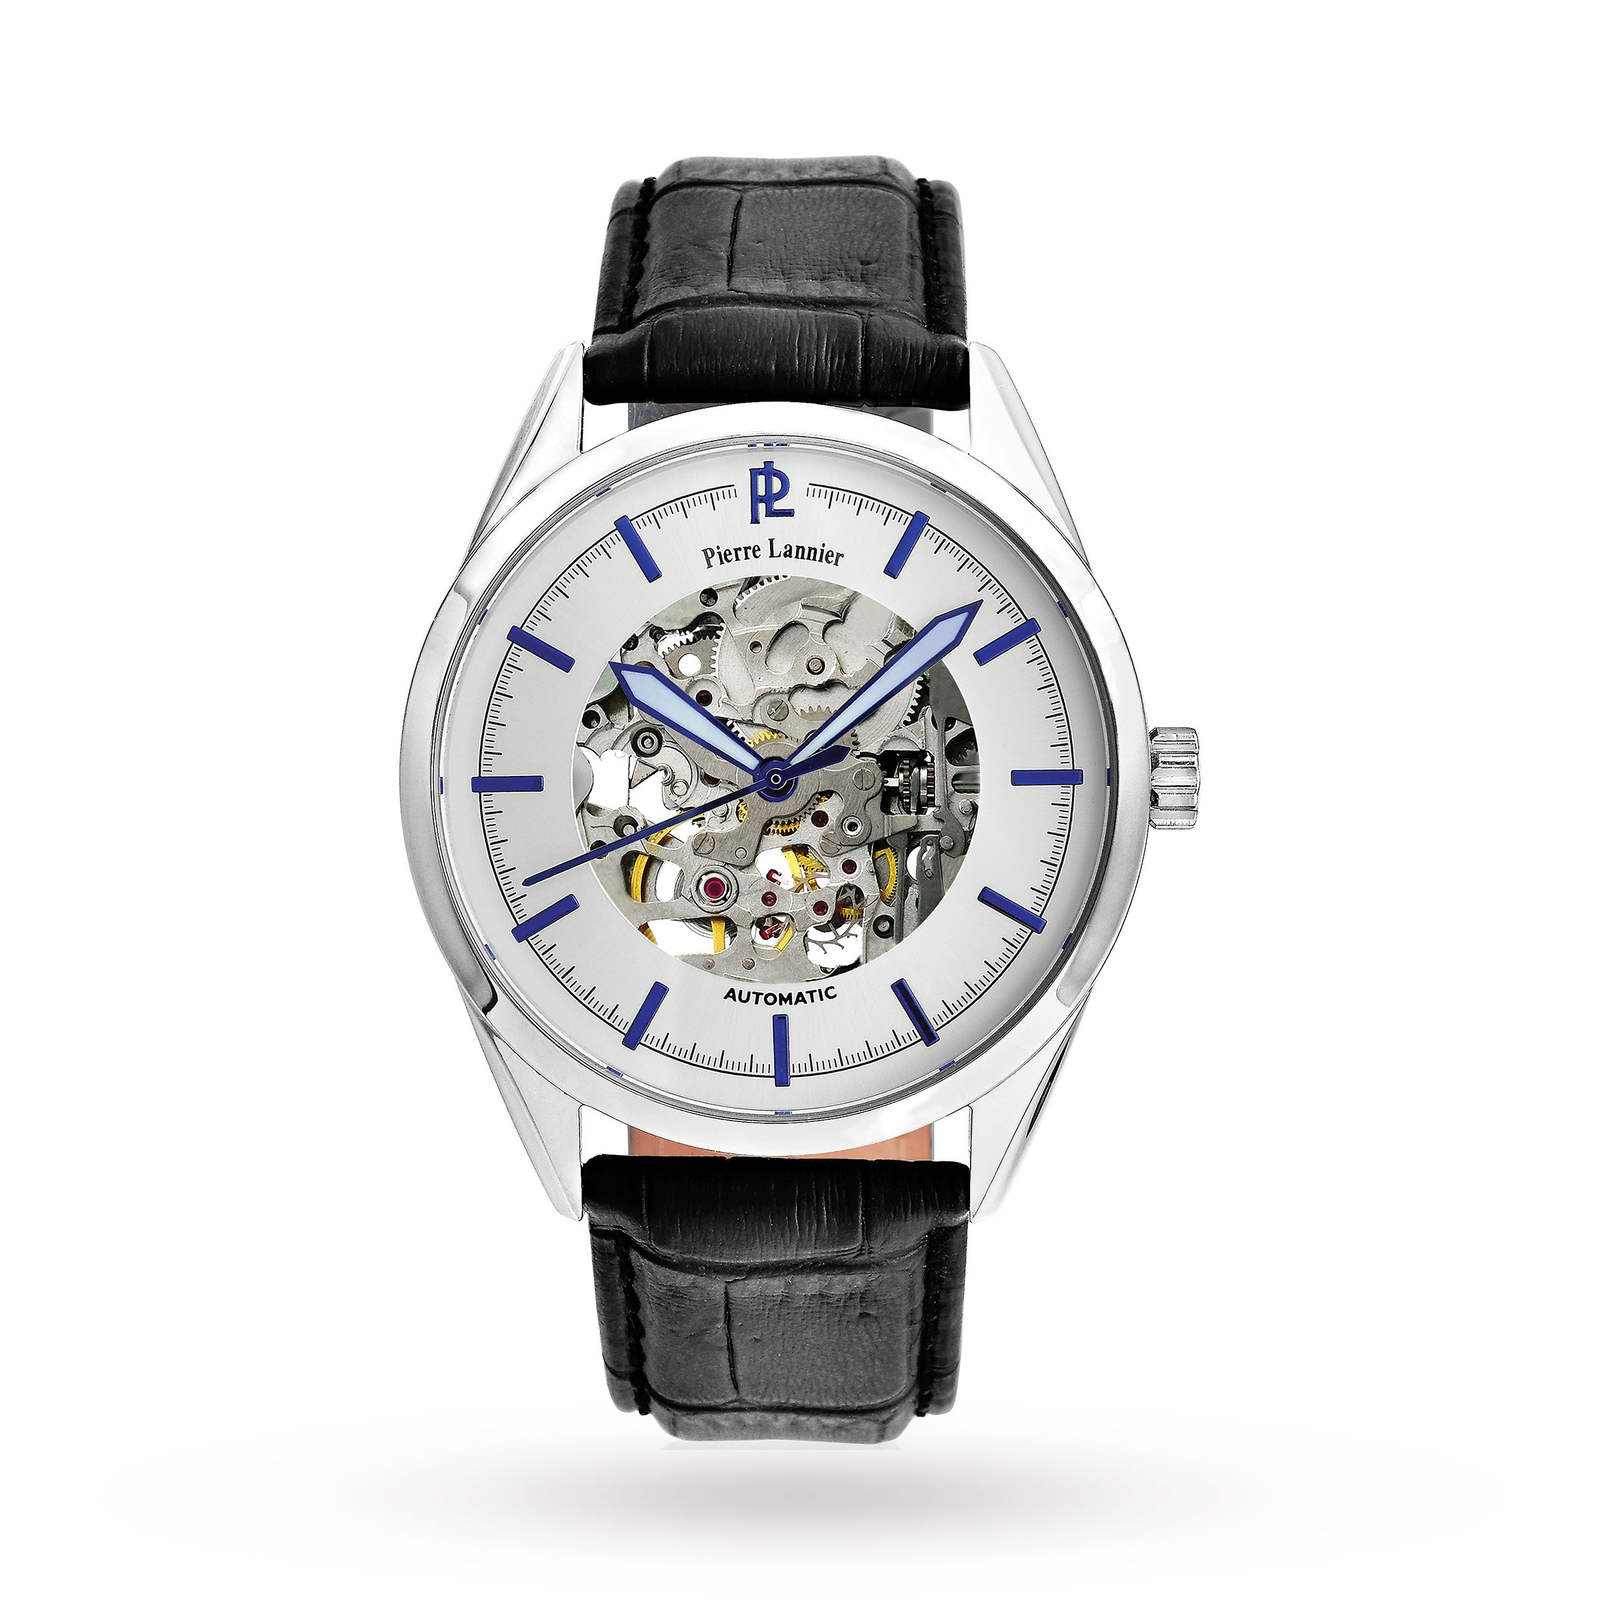 Pierre Lannier Men's Automatic Watch